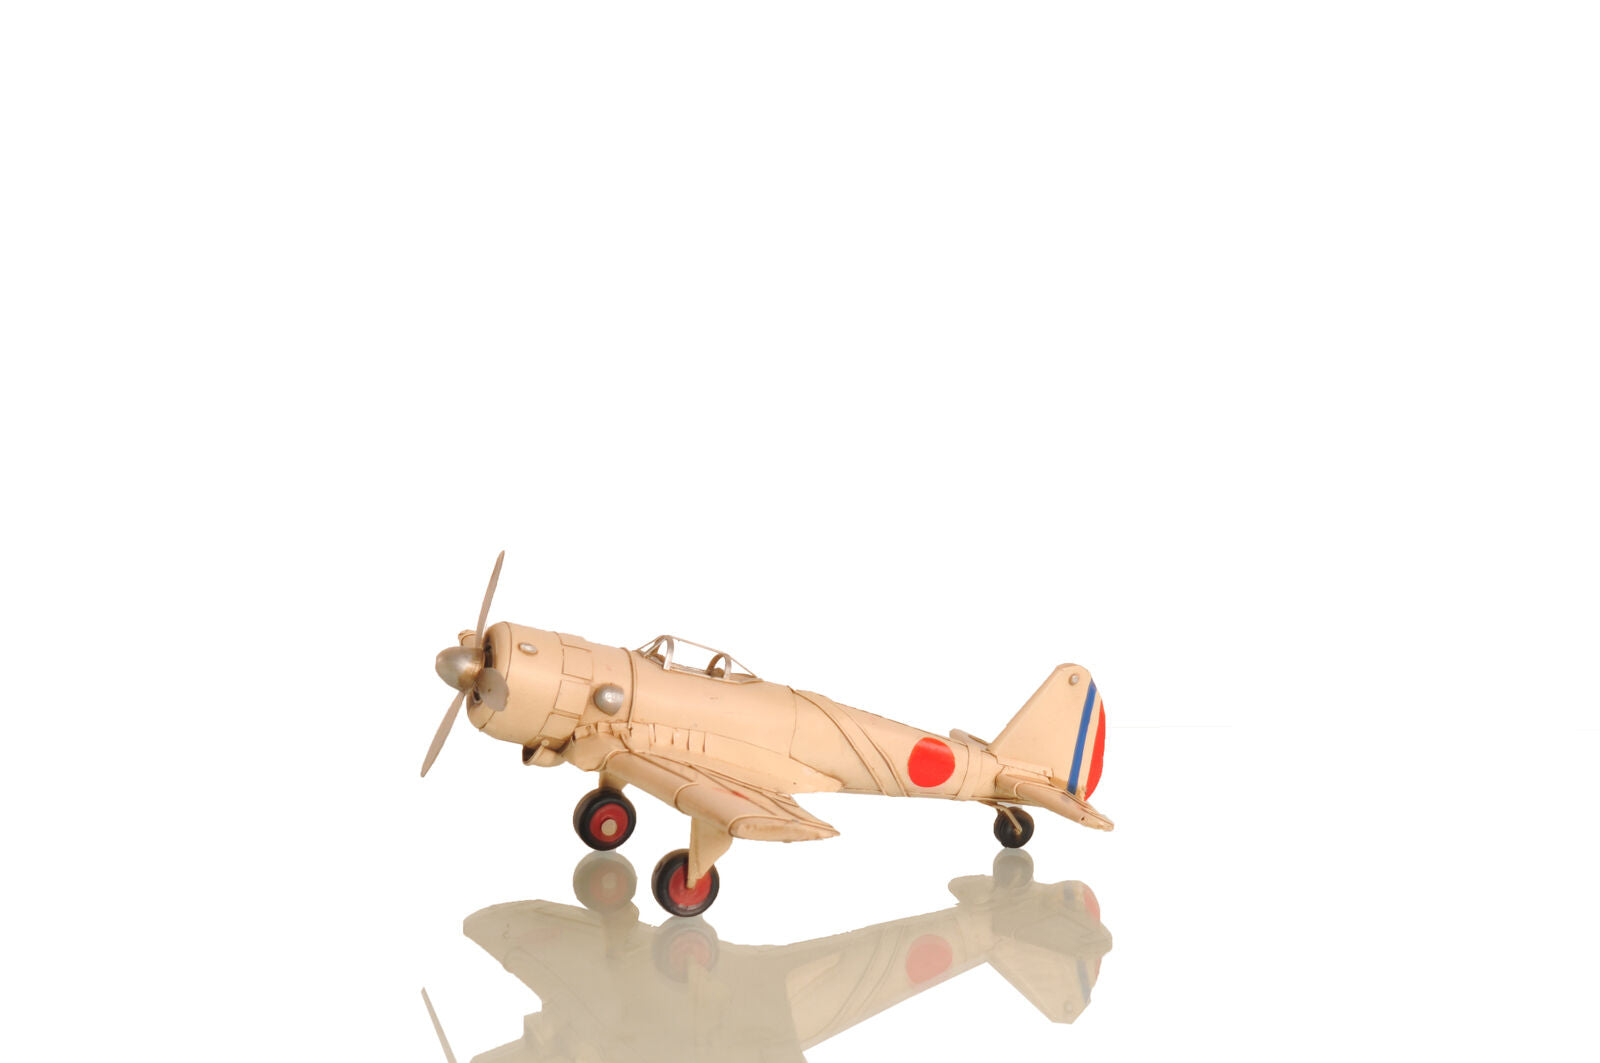 All Metal 1943 Nakajima Ki-43 Oscar Fighter Airplane Model